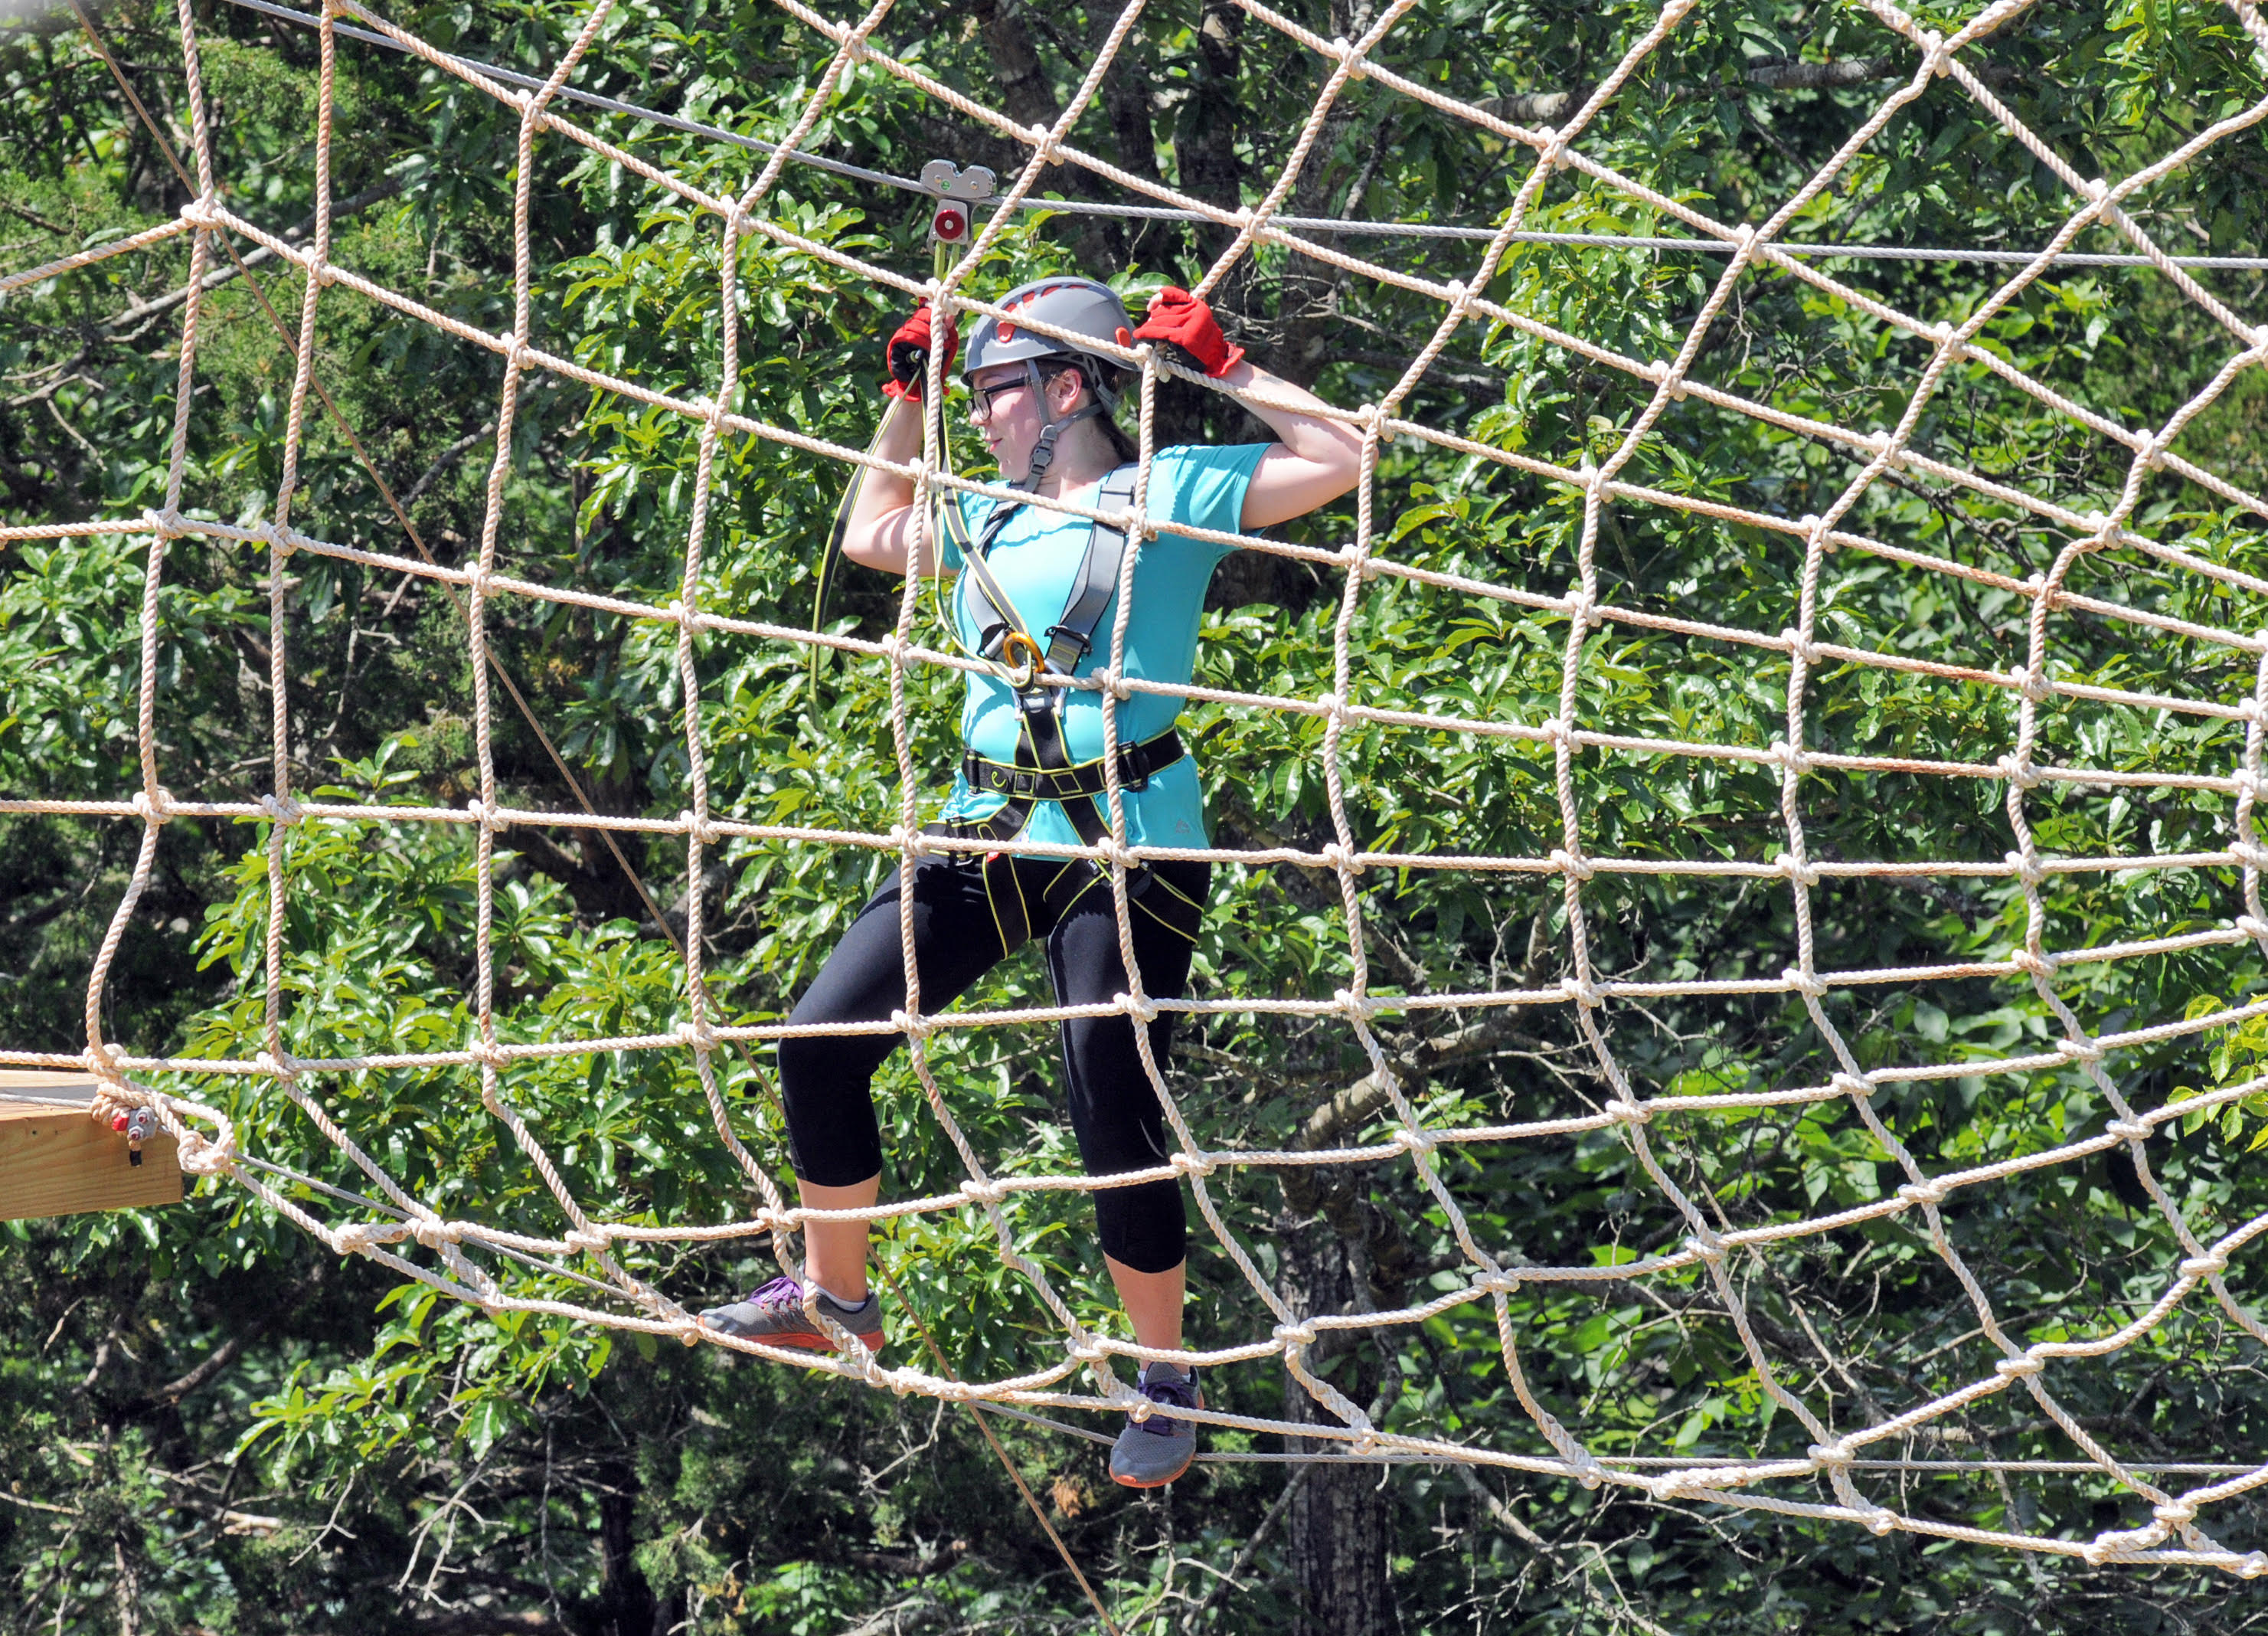 Floating Treetops Aerial Park